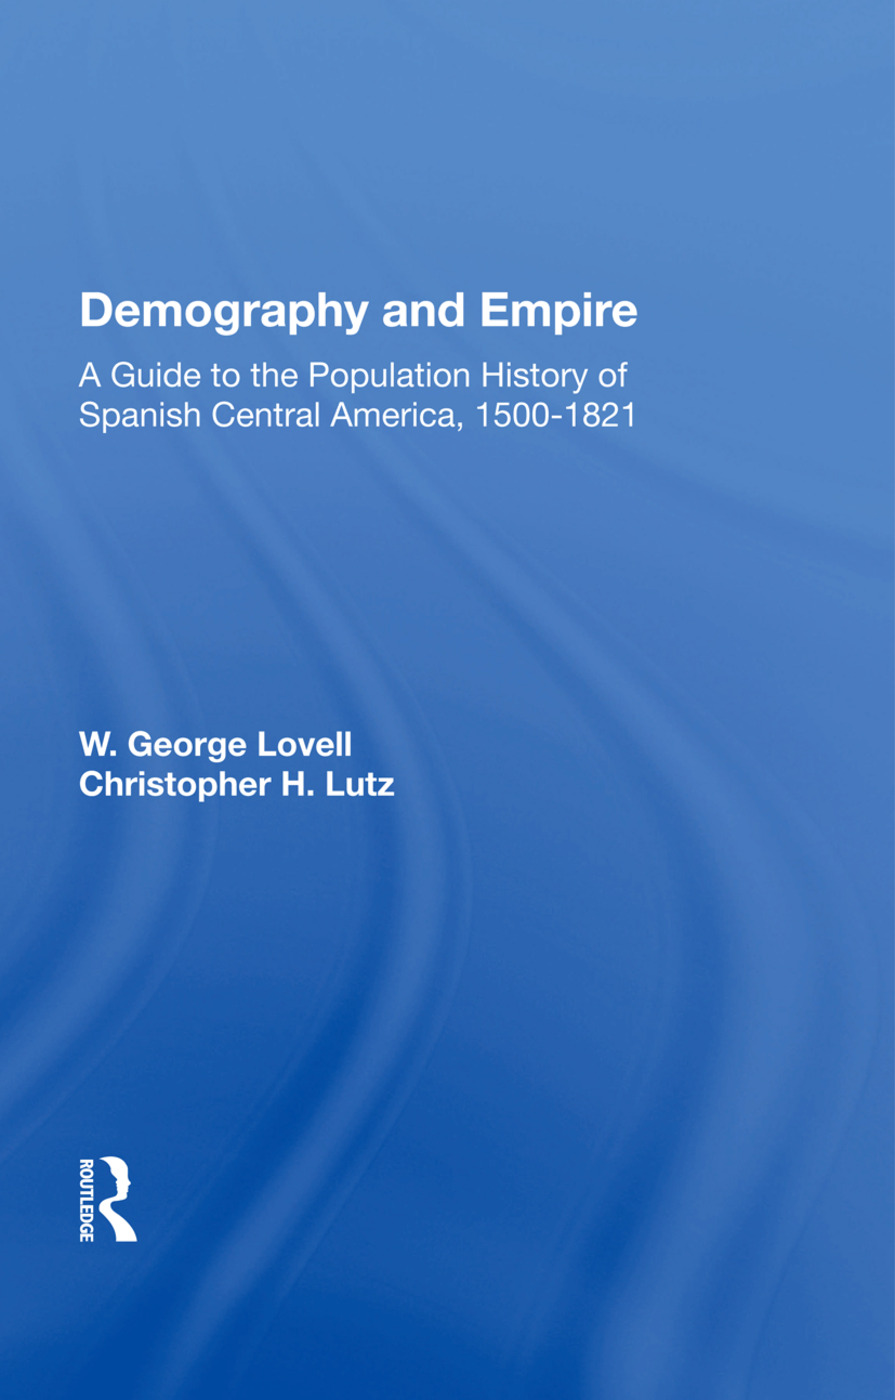 Demography And Empire: A Guide To The Population History Of Spanish Central America, 1500-1821 book cover